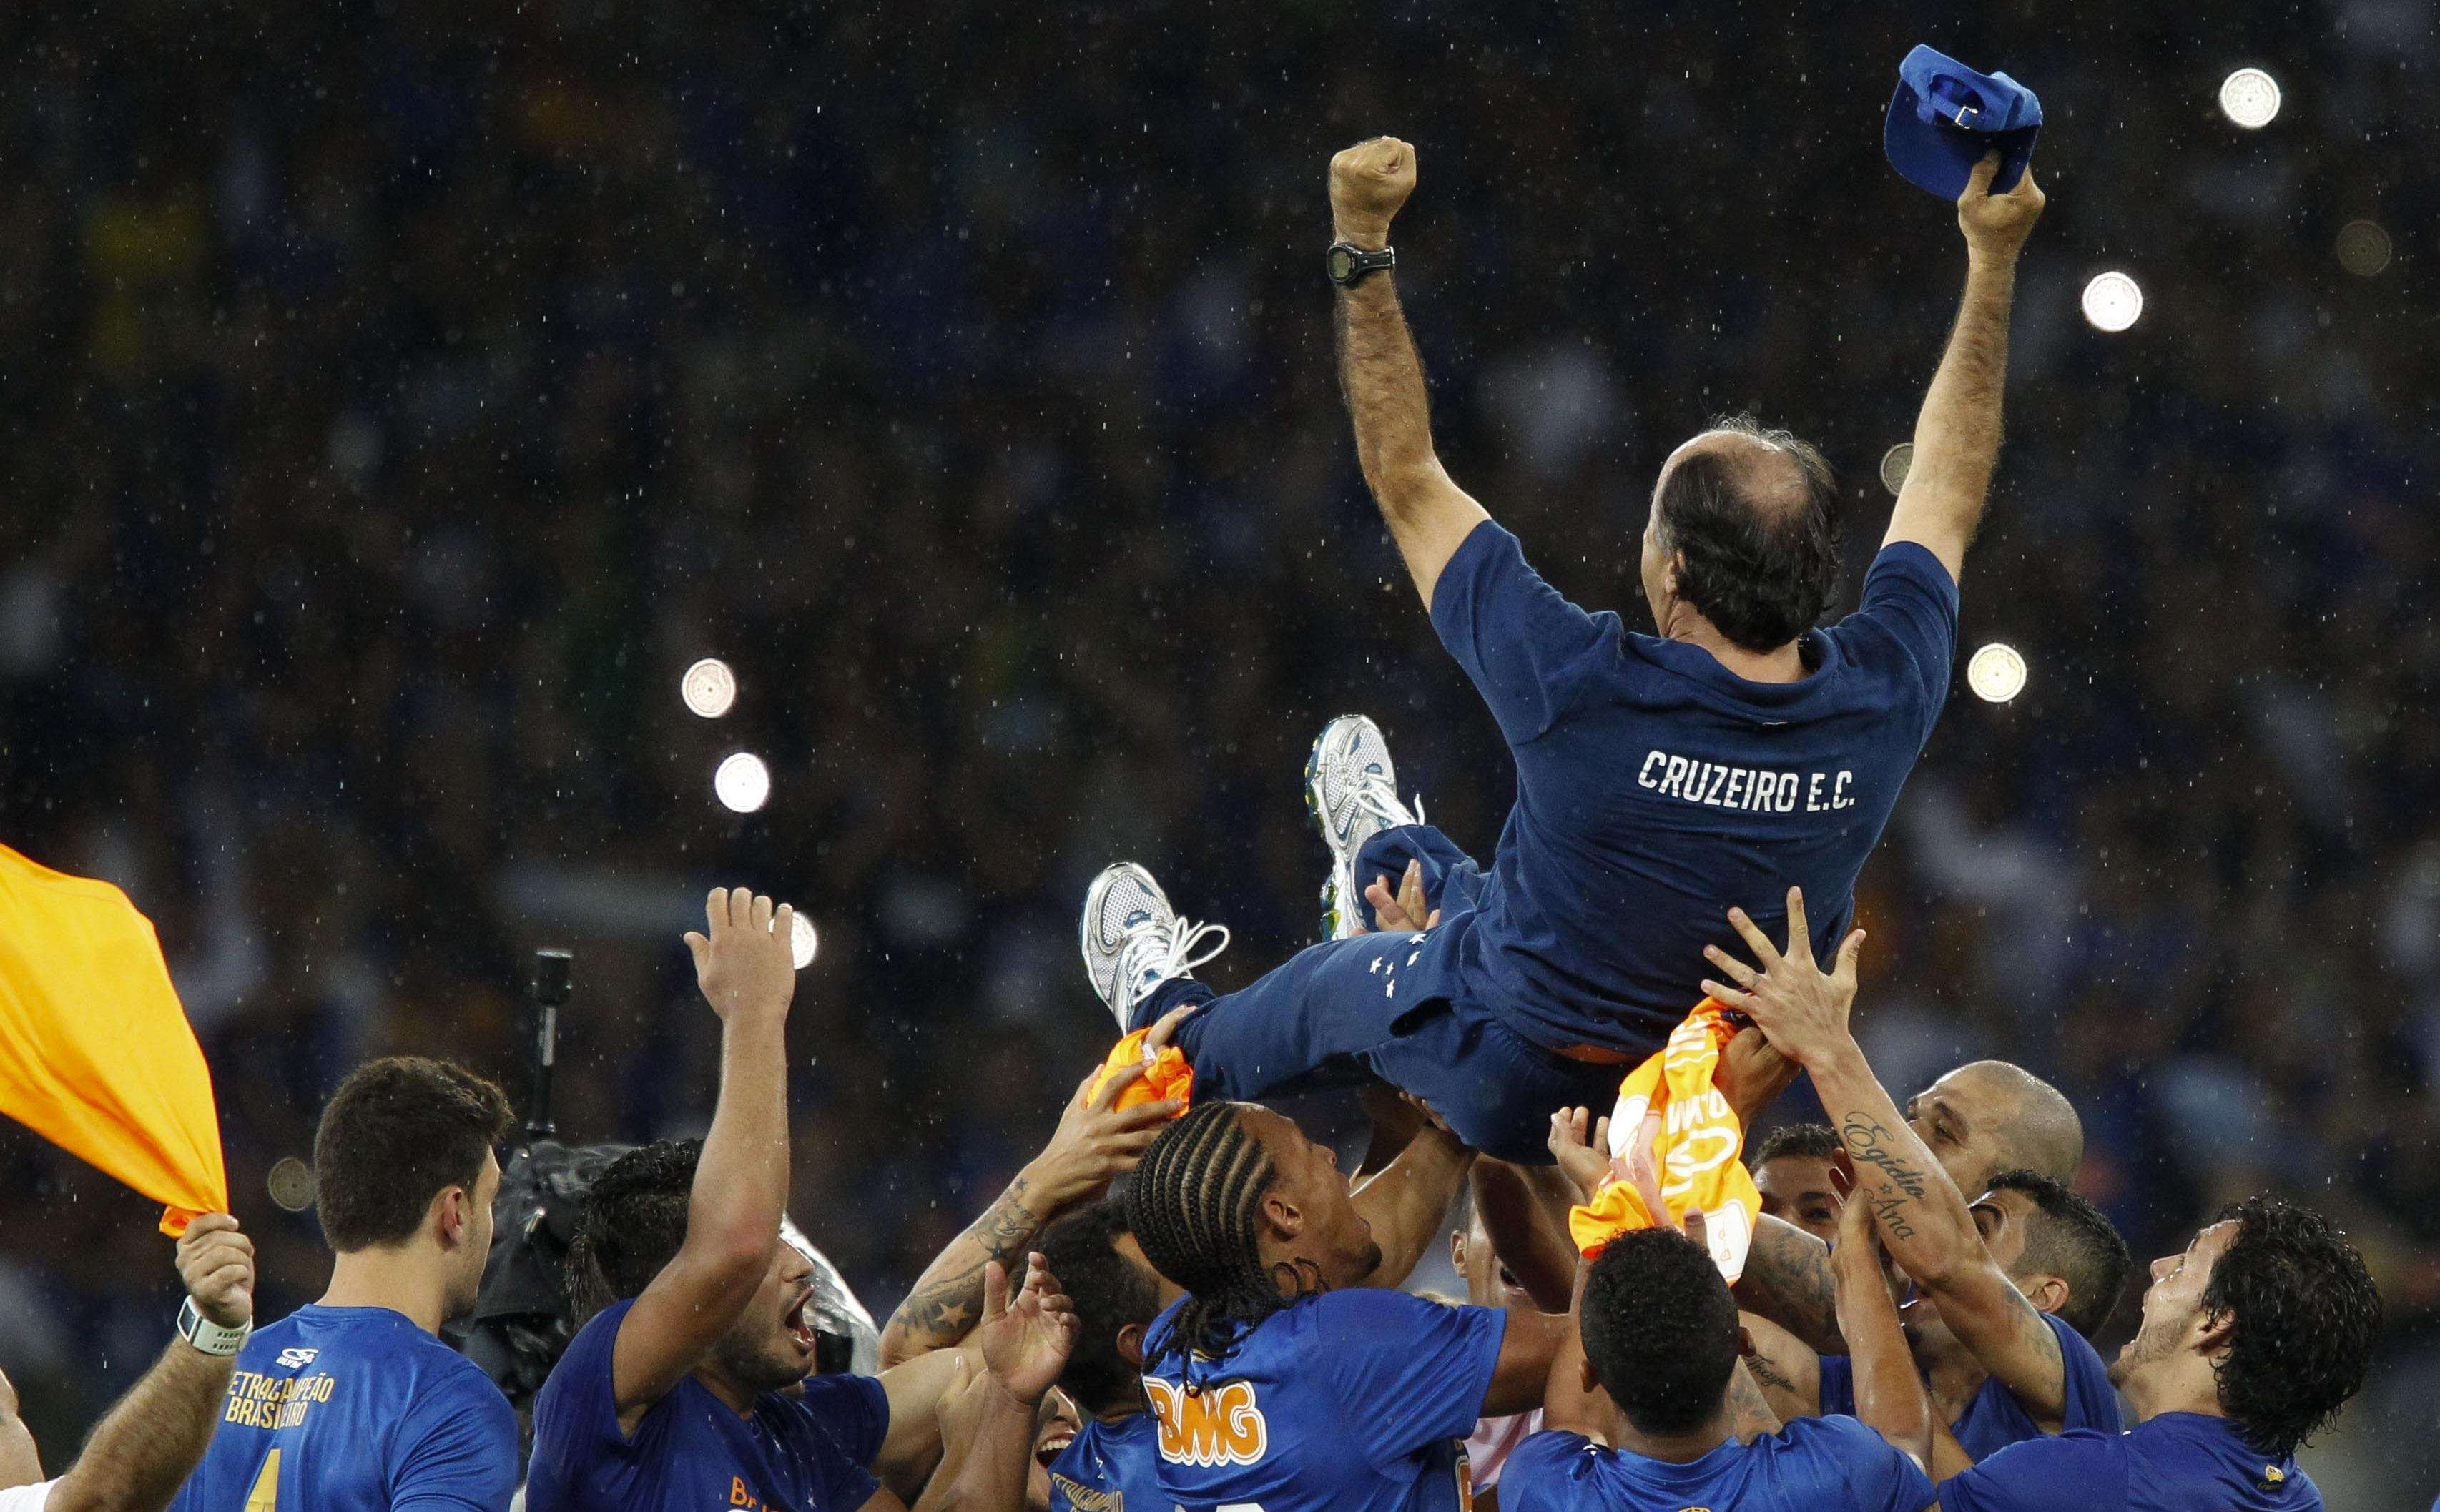 Cruzeiro's players toss their head coach Marcelo Oliveira (top) as they celebrate after winning the Brazilian Serie A championship title with three matches to spare, with a 2-1 win over Goias soccer club, in Belo Horizonte November 23, 2014. Cruzeiro were crowned Brazilian league champions for the second consecutive year on Sunday after they beat Goias 2-1 at home to open up an unbeatable lead at the top of Serie A. REUTERS/Washington Alves (BRAZIL - Tags: SPORT SOCCER) Foto: STRINGER/BRAZIL/REUTERS